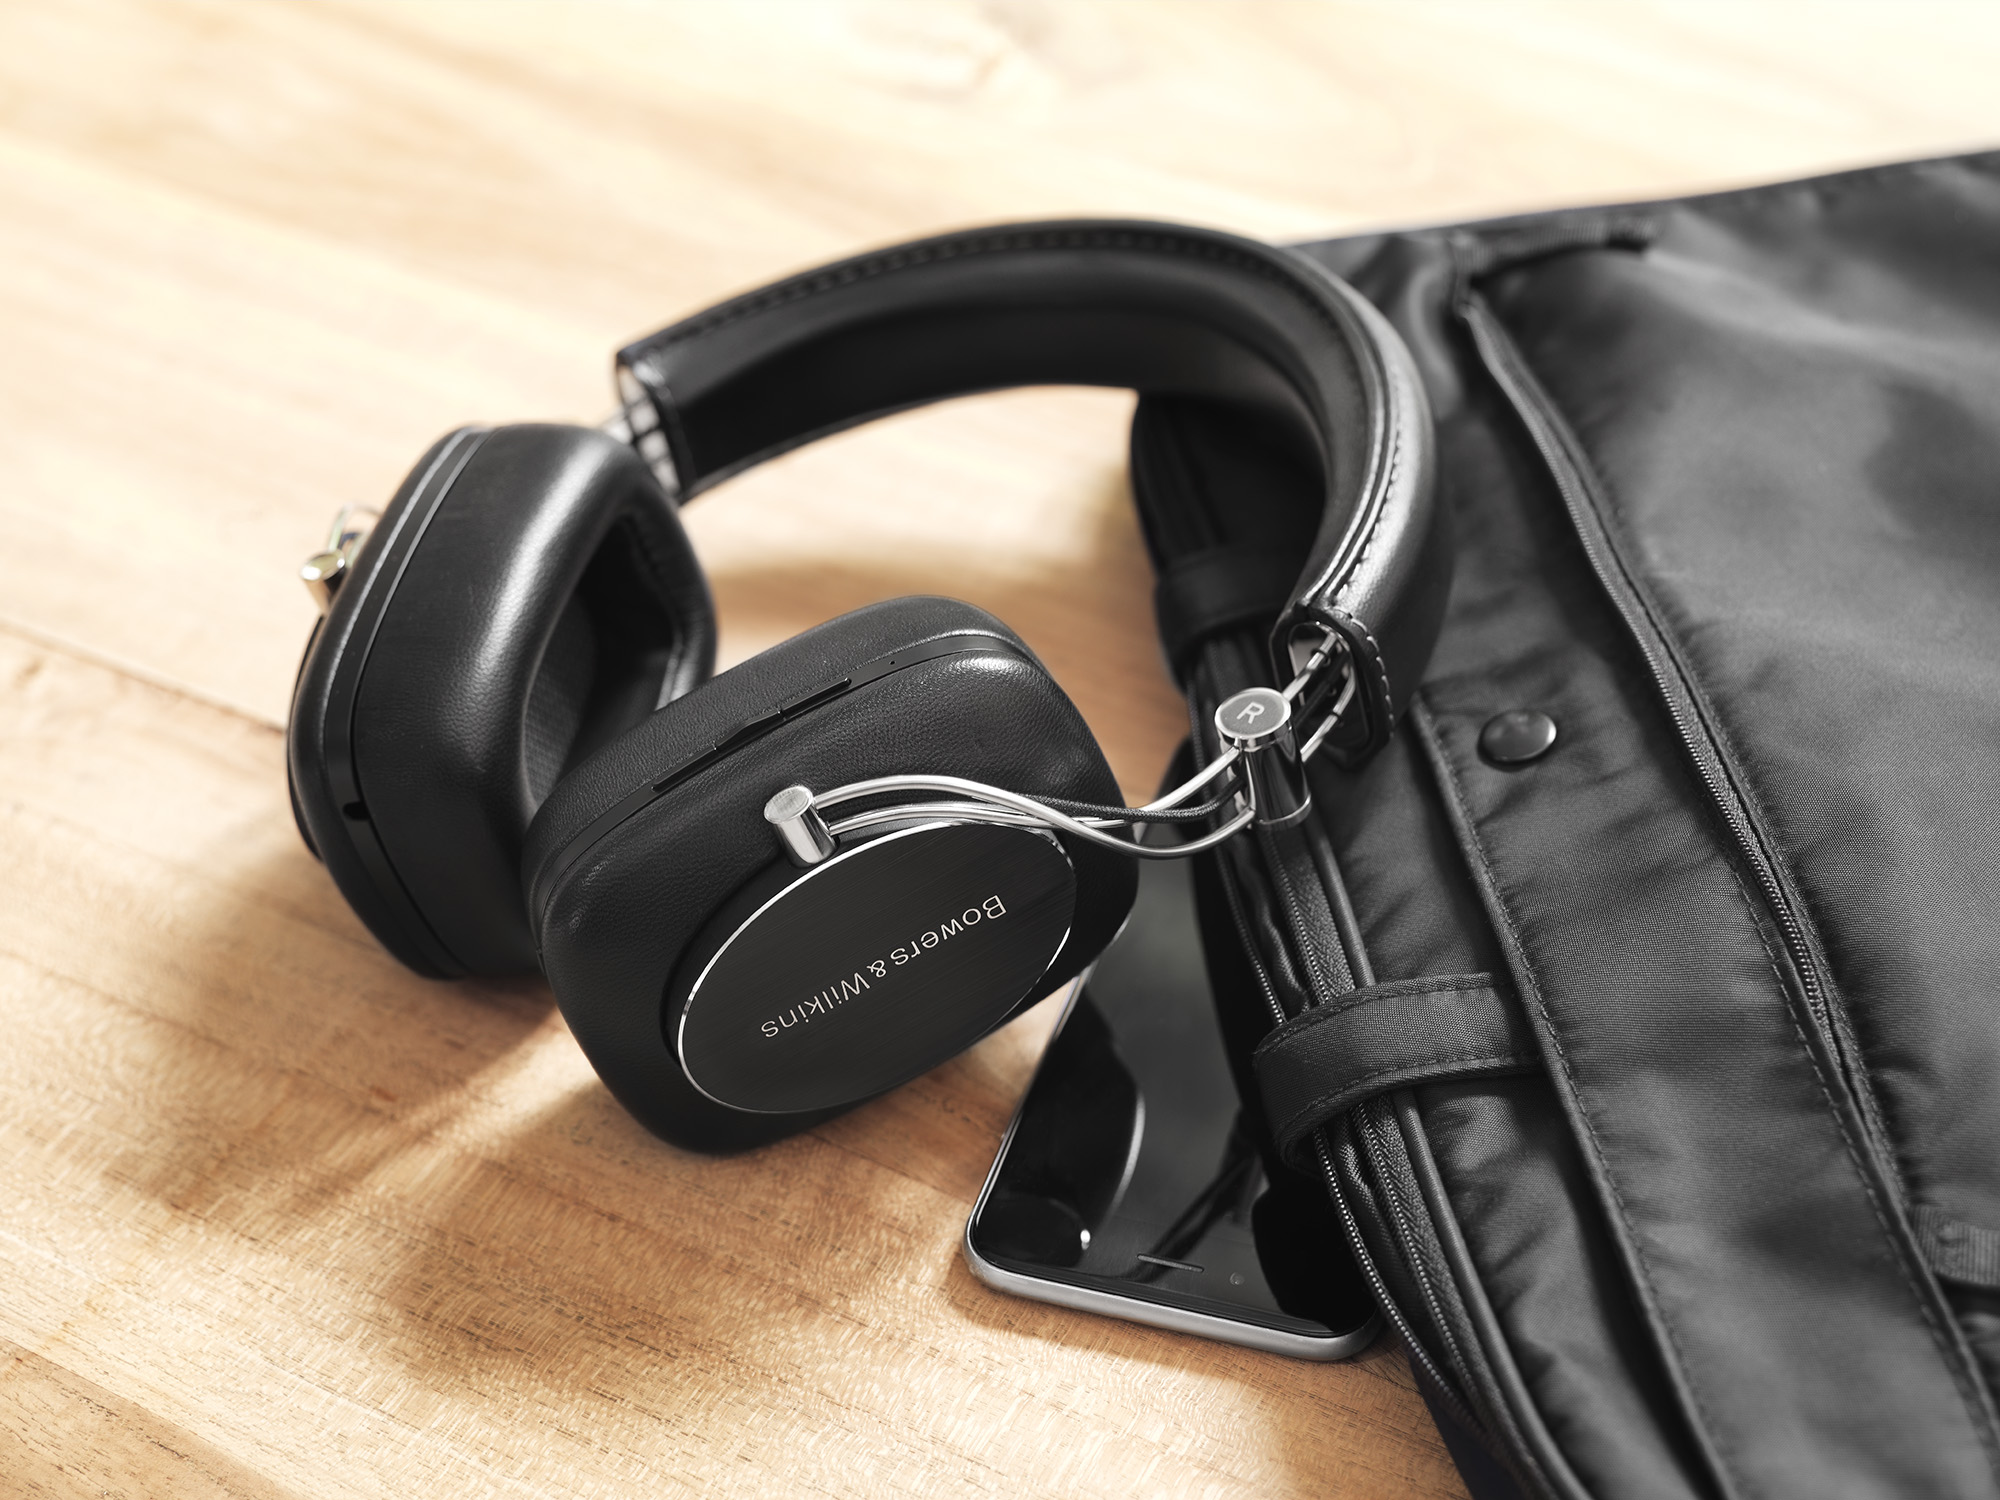 P7 Wireless di Bowers & Wilkins: la nuova cuffia Bluetooth Hi End